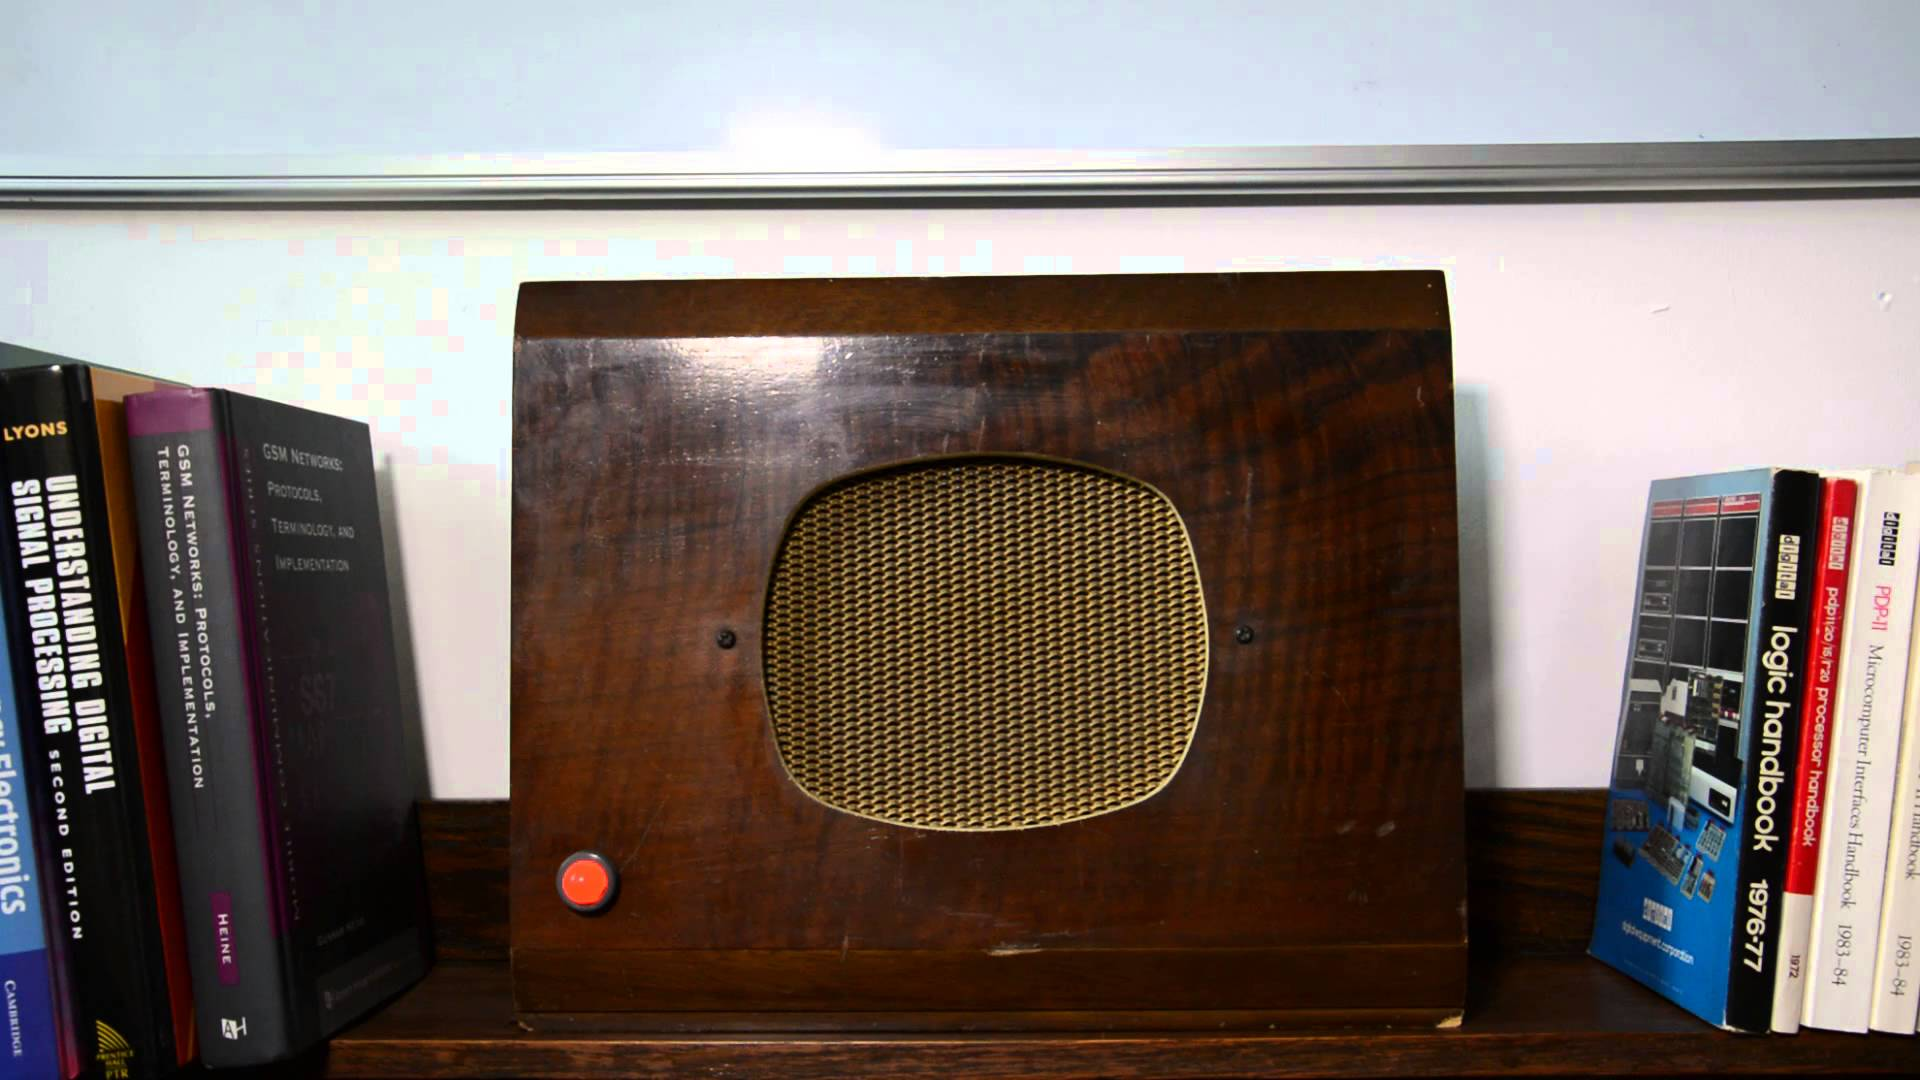 Raspberry Pi Powered BBC Radio 4 Appliance#piday #raspberrypi